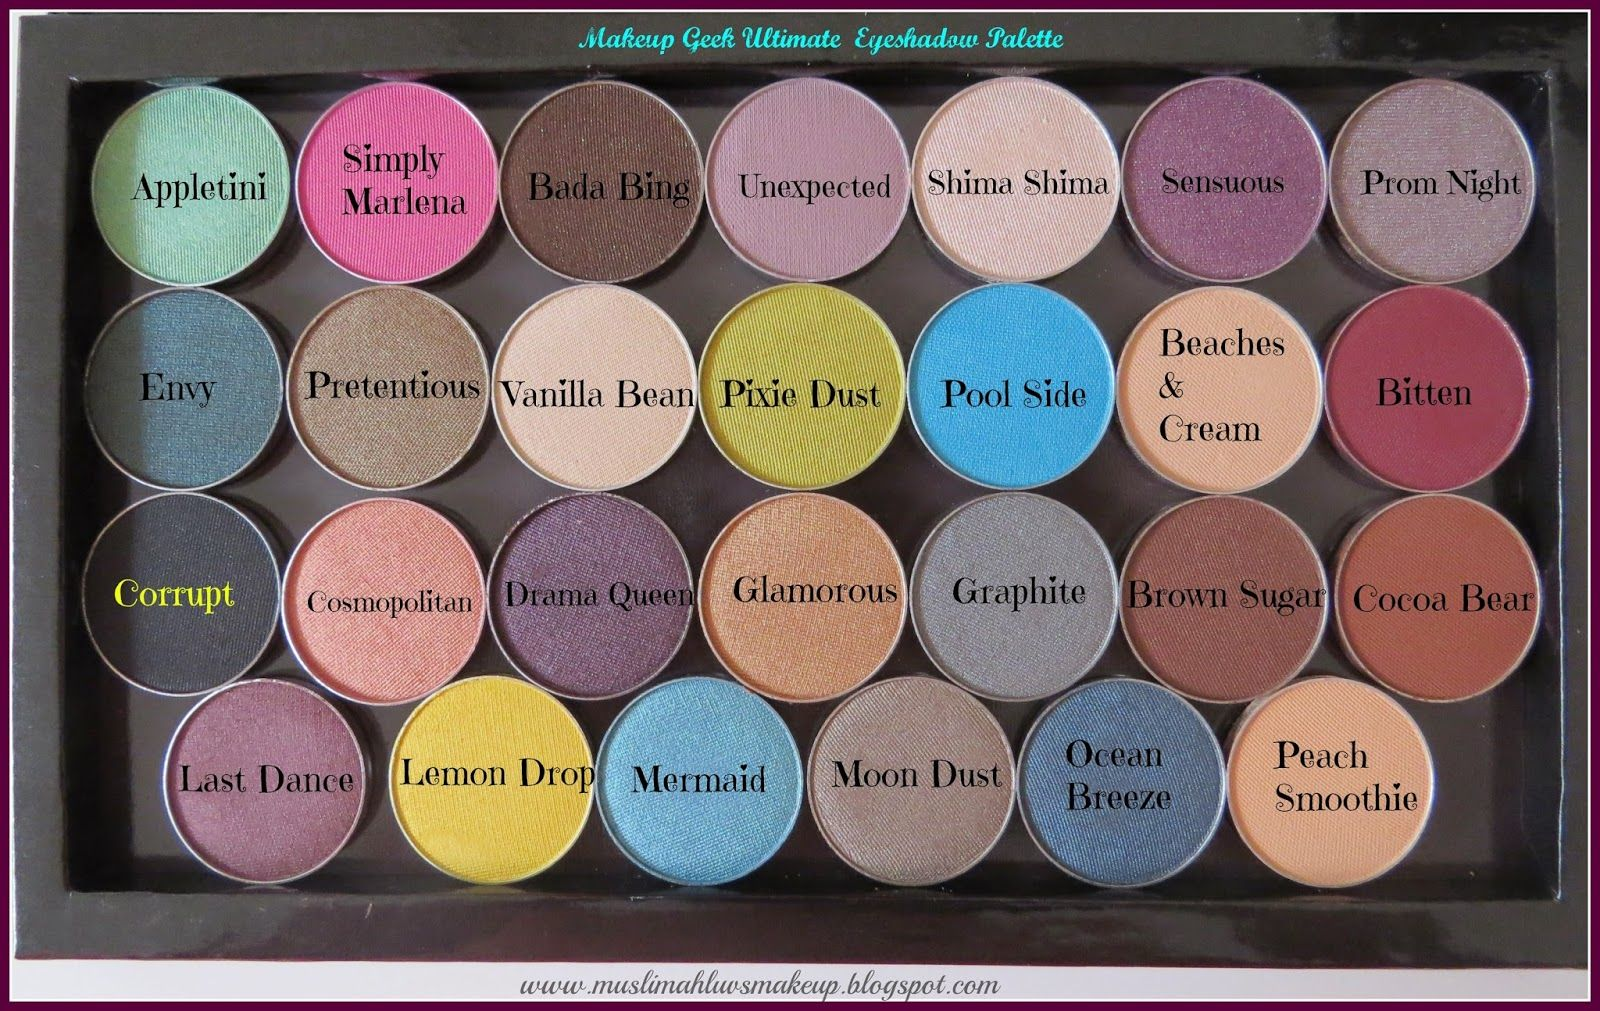 Makeup Geek\u0027s Ultimate Eyeshadow Palette Review,Photos and